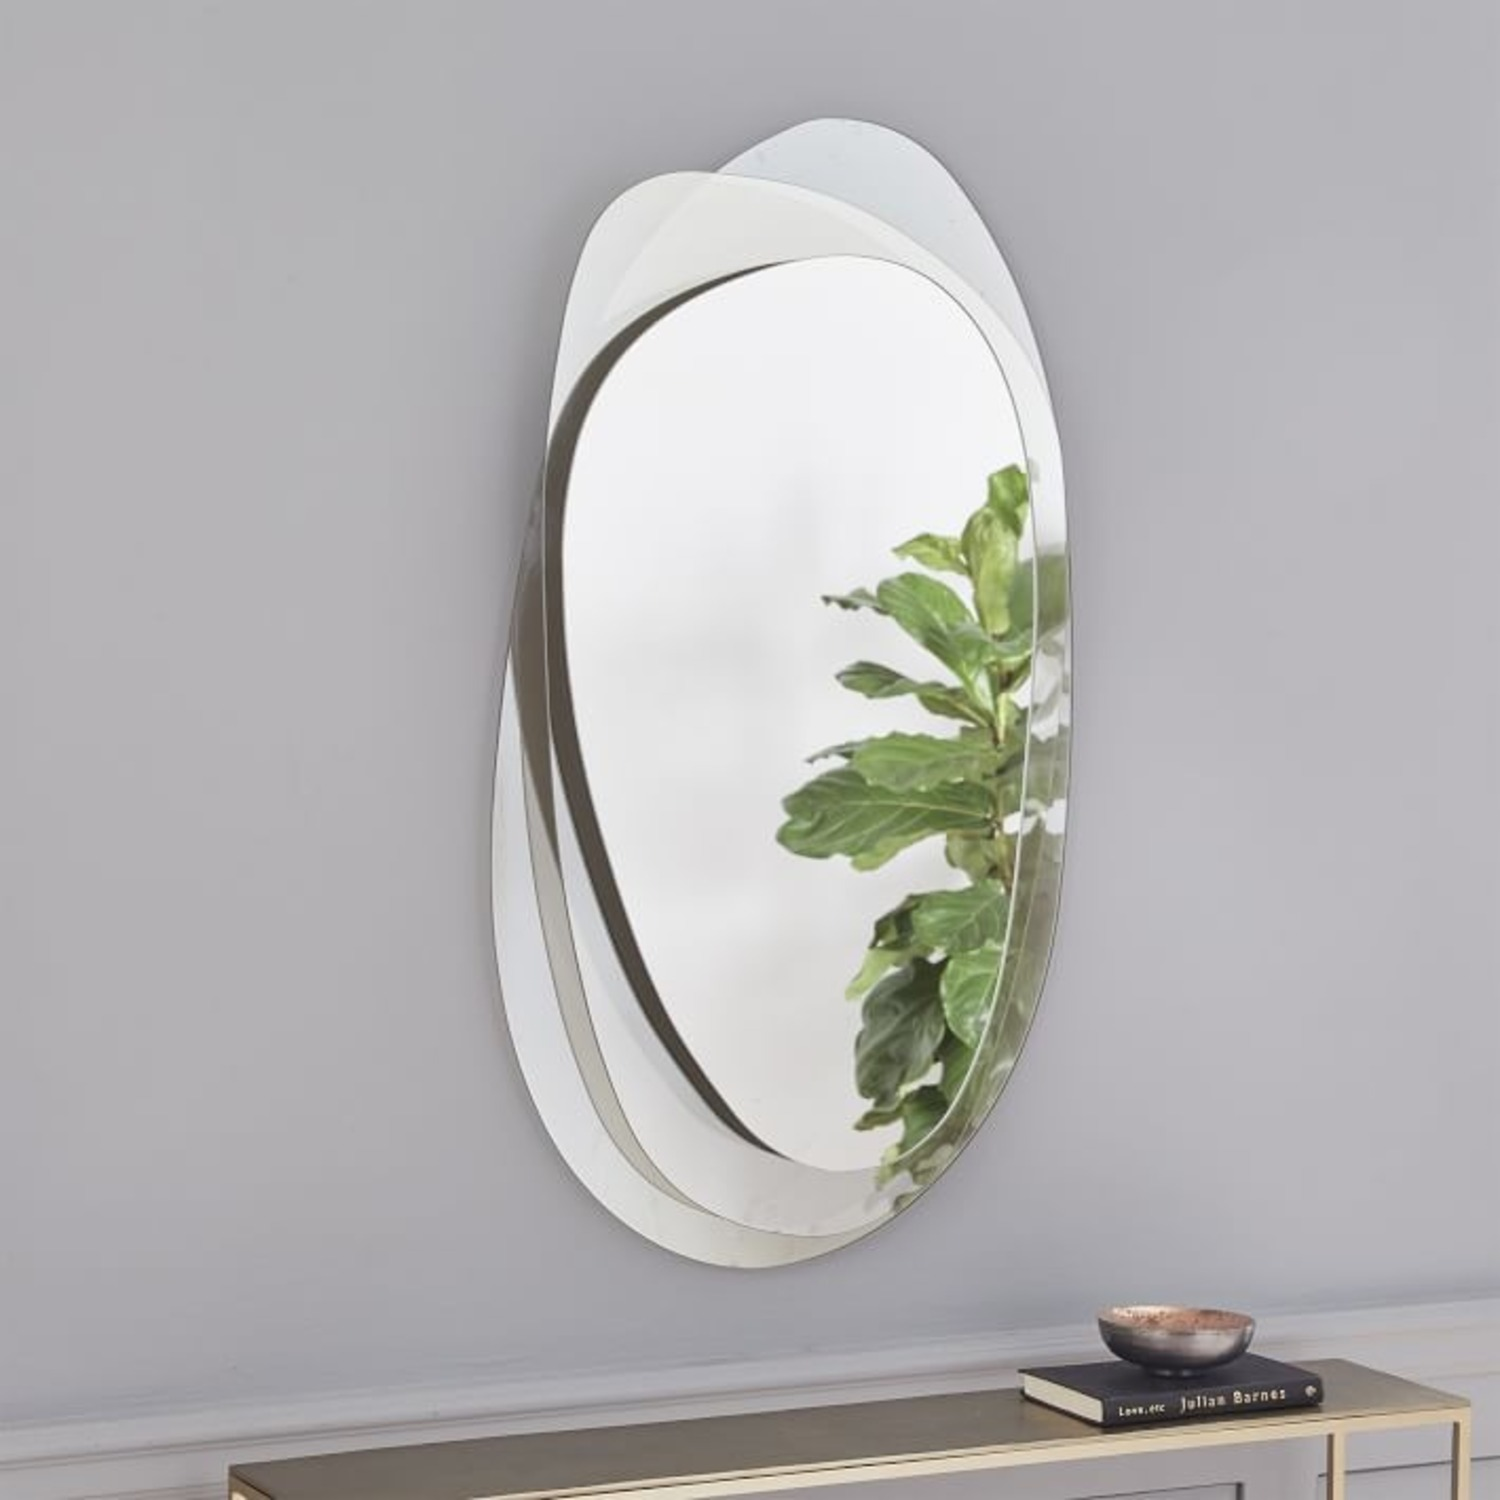 West Elm Layered Glass Wall Mirror - image-1